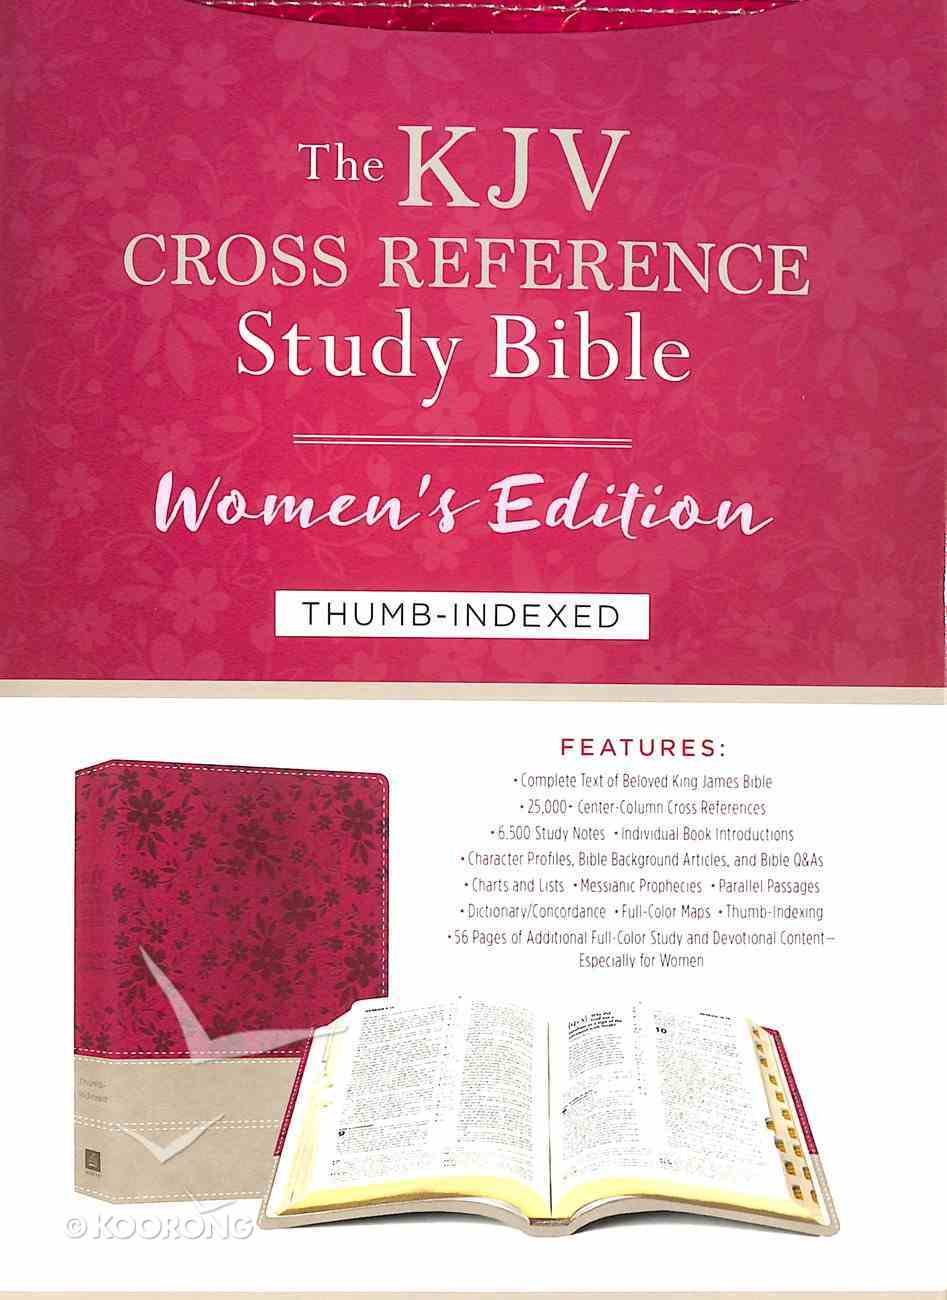 KJV Cross Reference Study Indexed Bible Women's Edition Floral Berry Imitation Leather